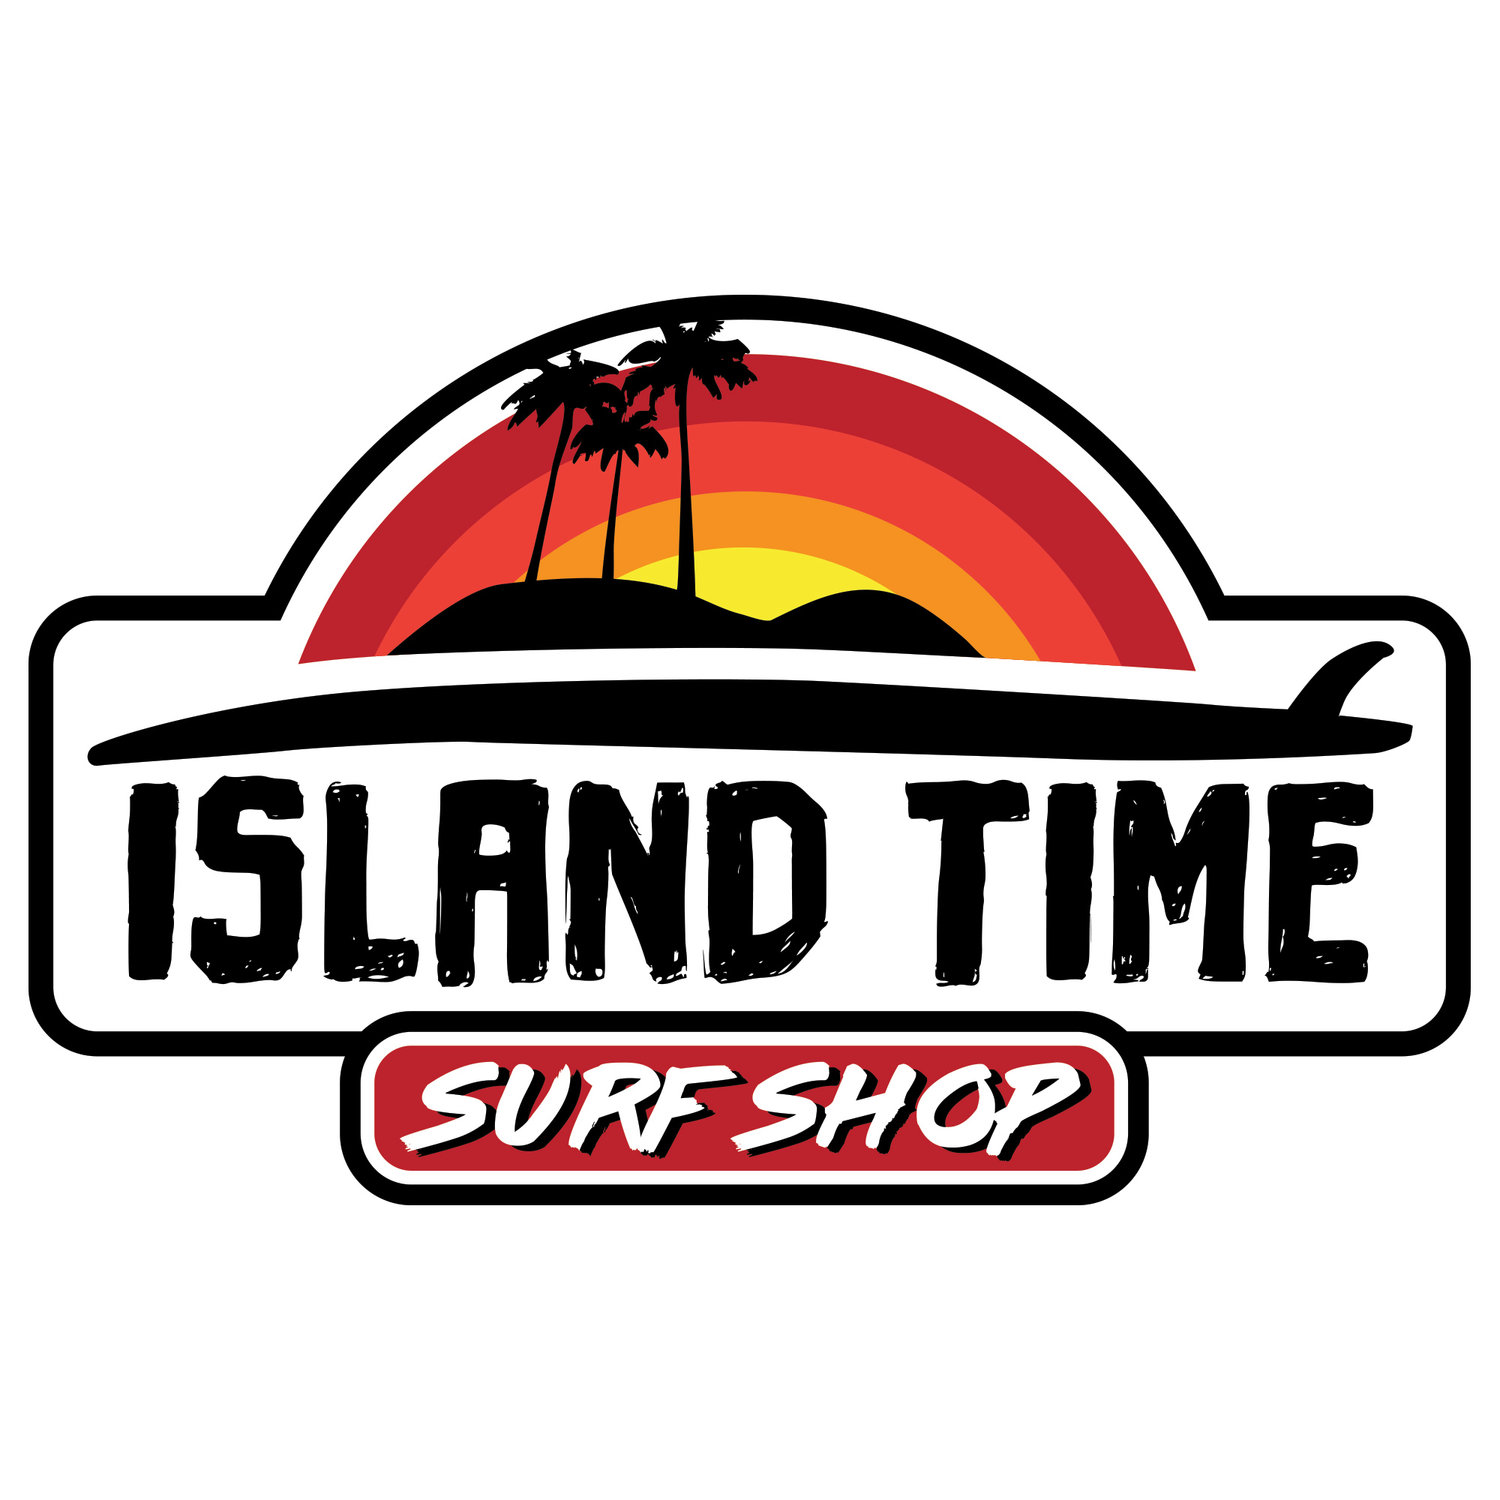 Island Time Surf Shop